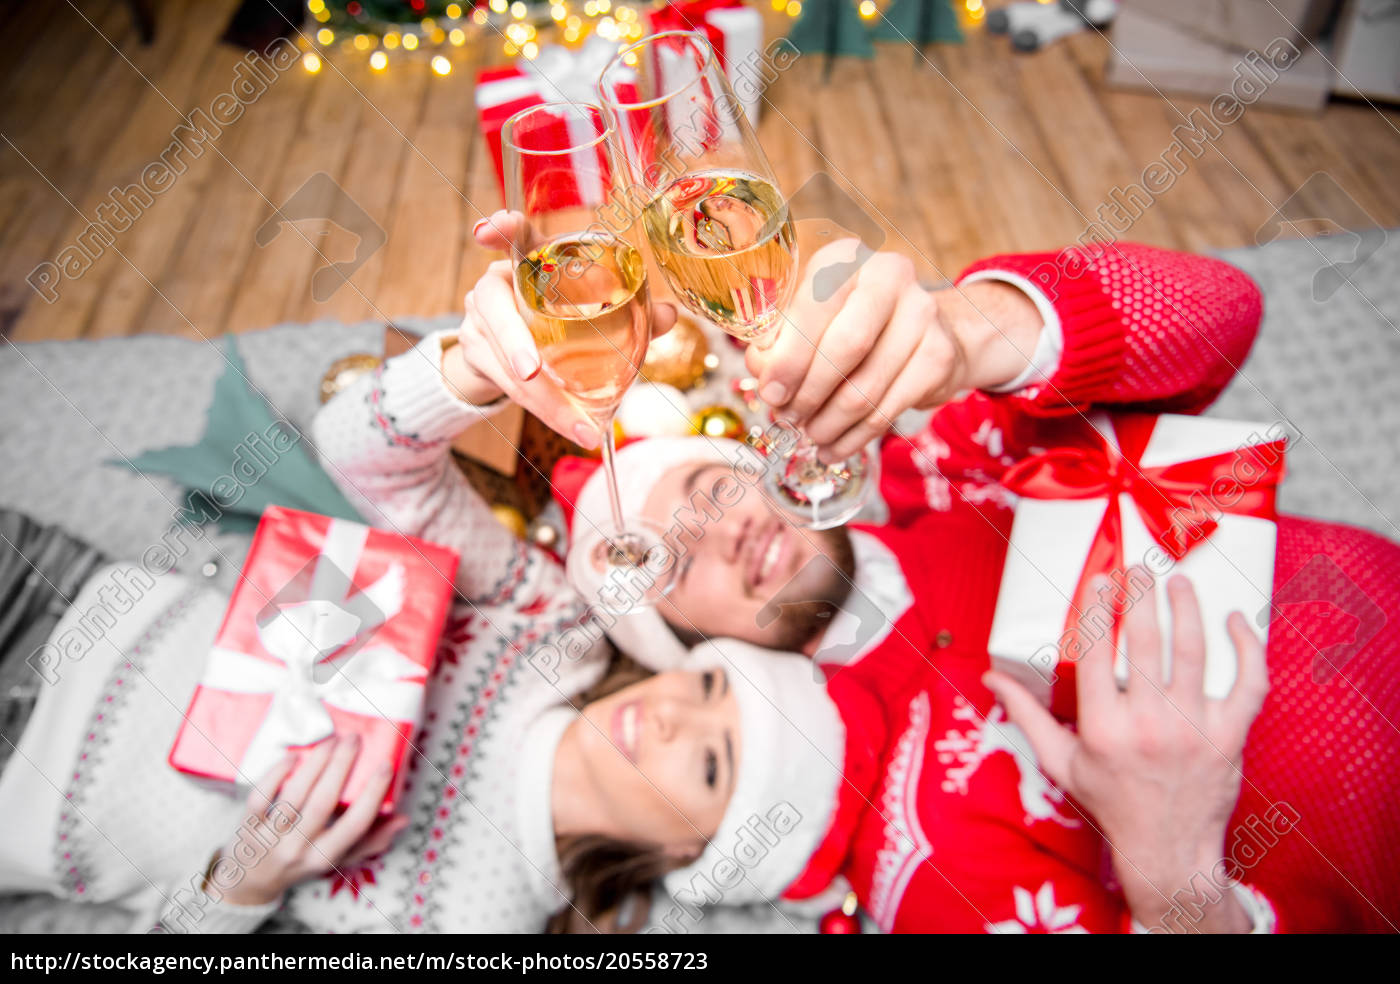 couple, toasting, with, champagne, glasses - 20558723